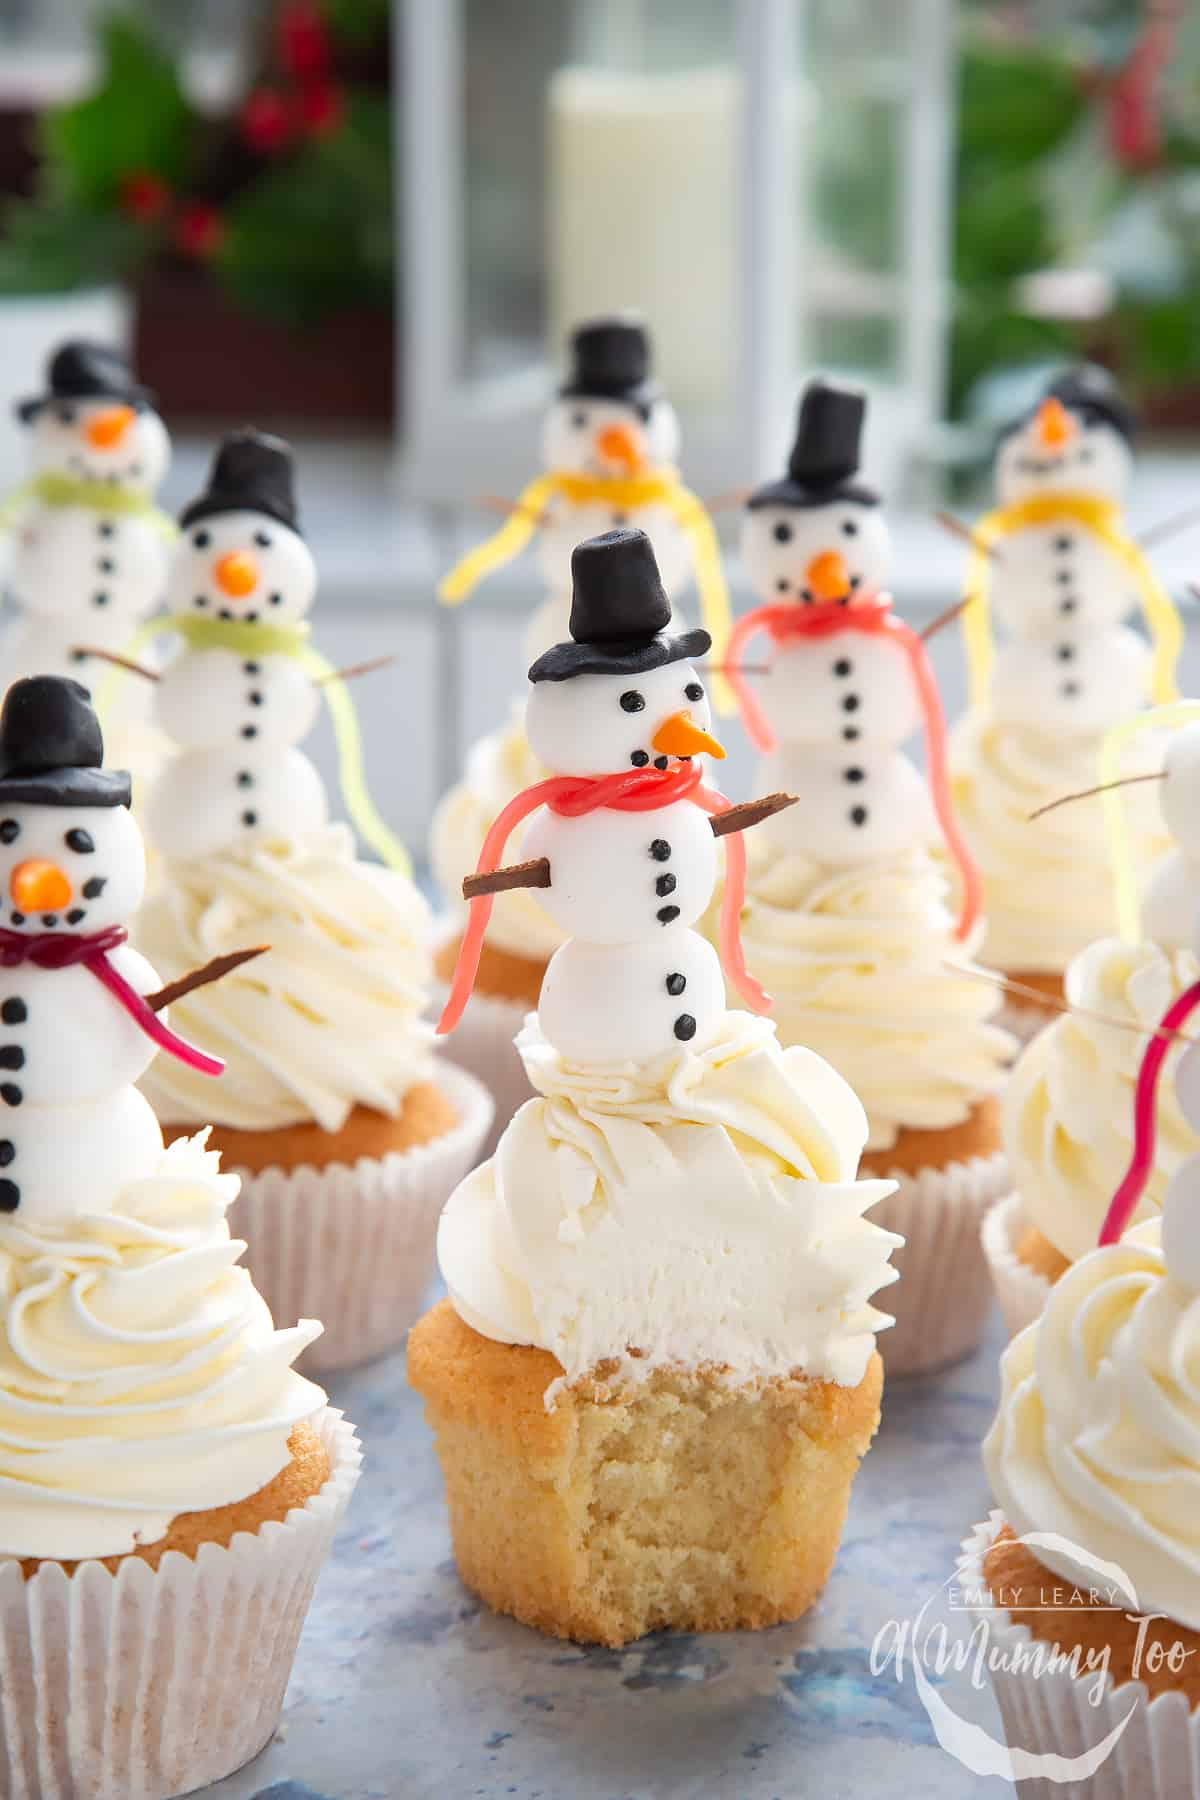 Multiple snowman cupcakes sat on a table. The centered snowman cupcake has been upwrapped and a bite has been taken out.